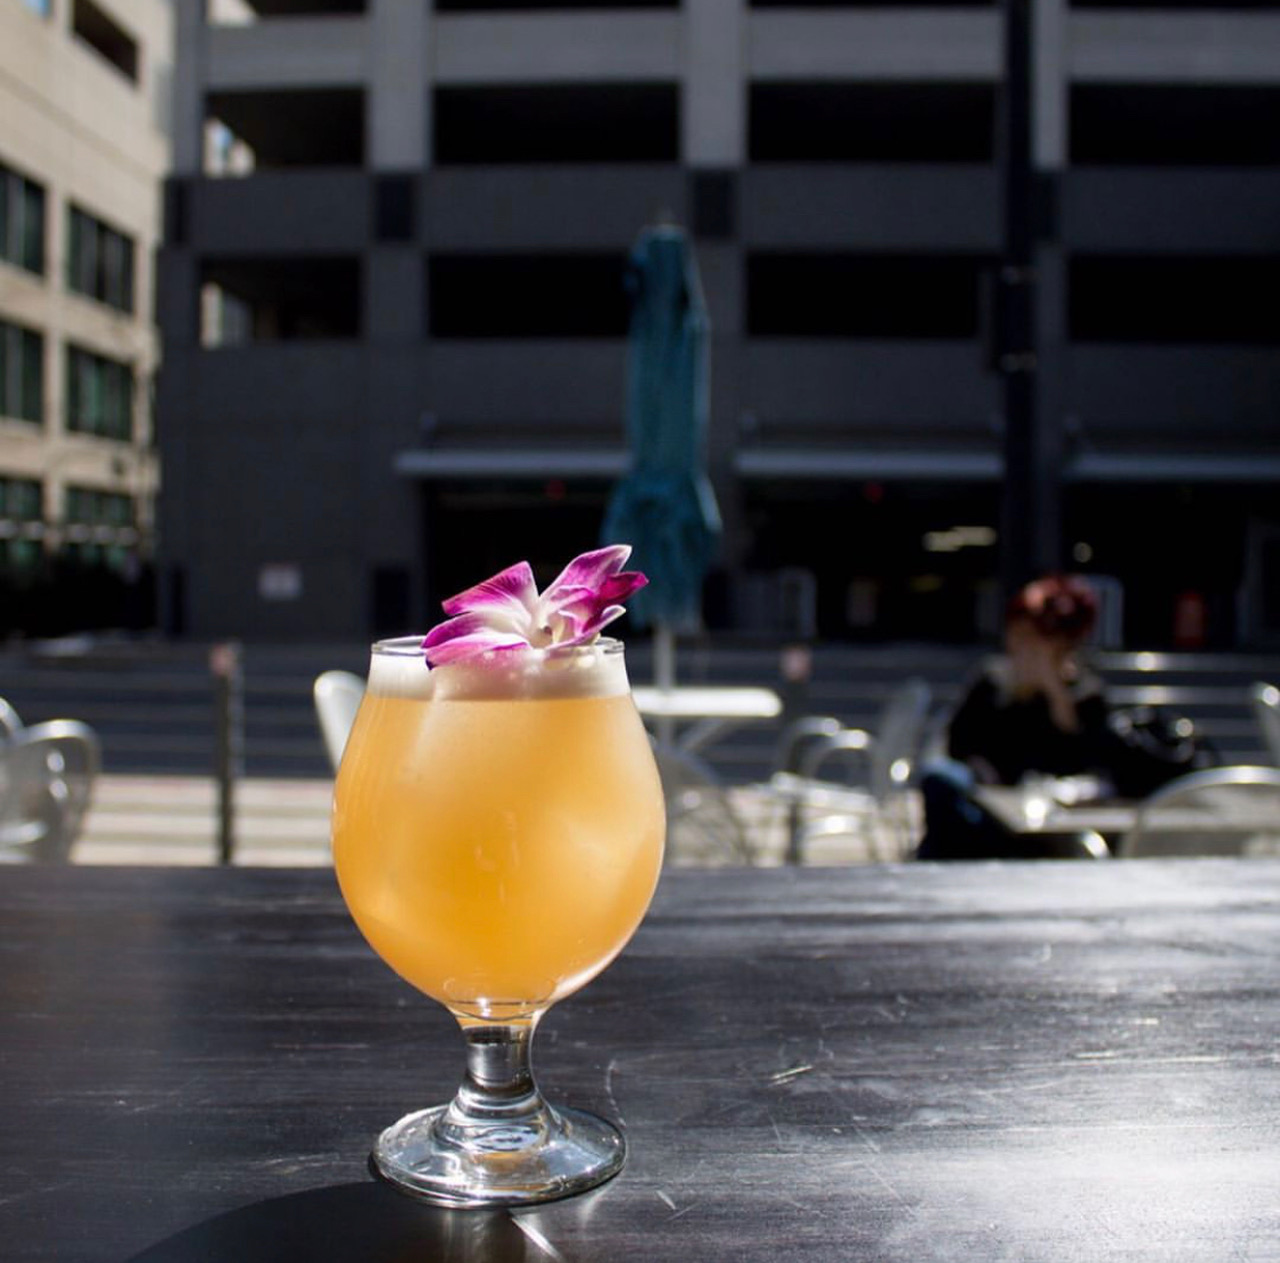 Lei Low: Gin, Lime, Oleo Saccaraum Syrup, Grapefruit and Lei Effect beer by Proper Brewery